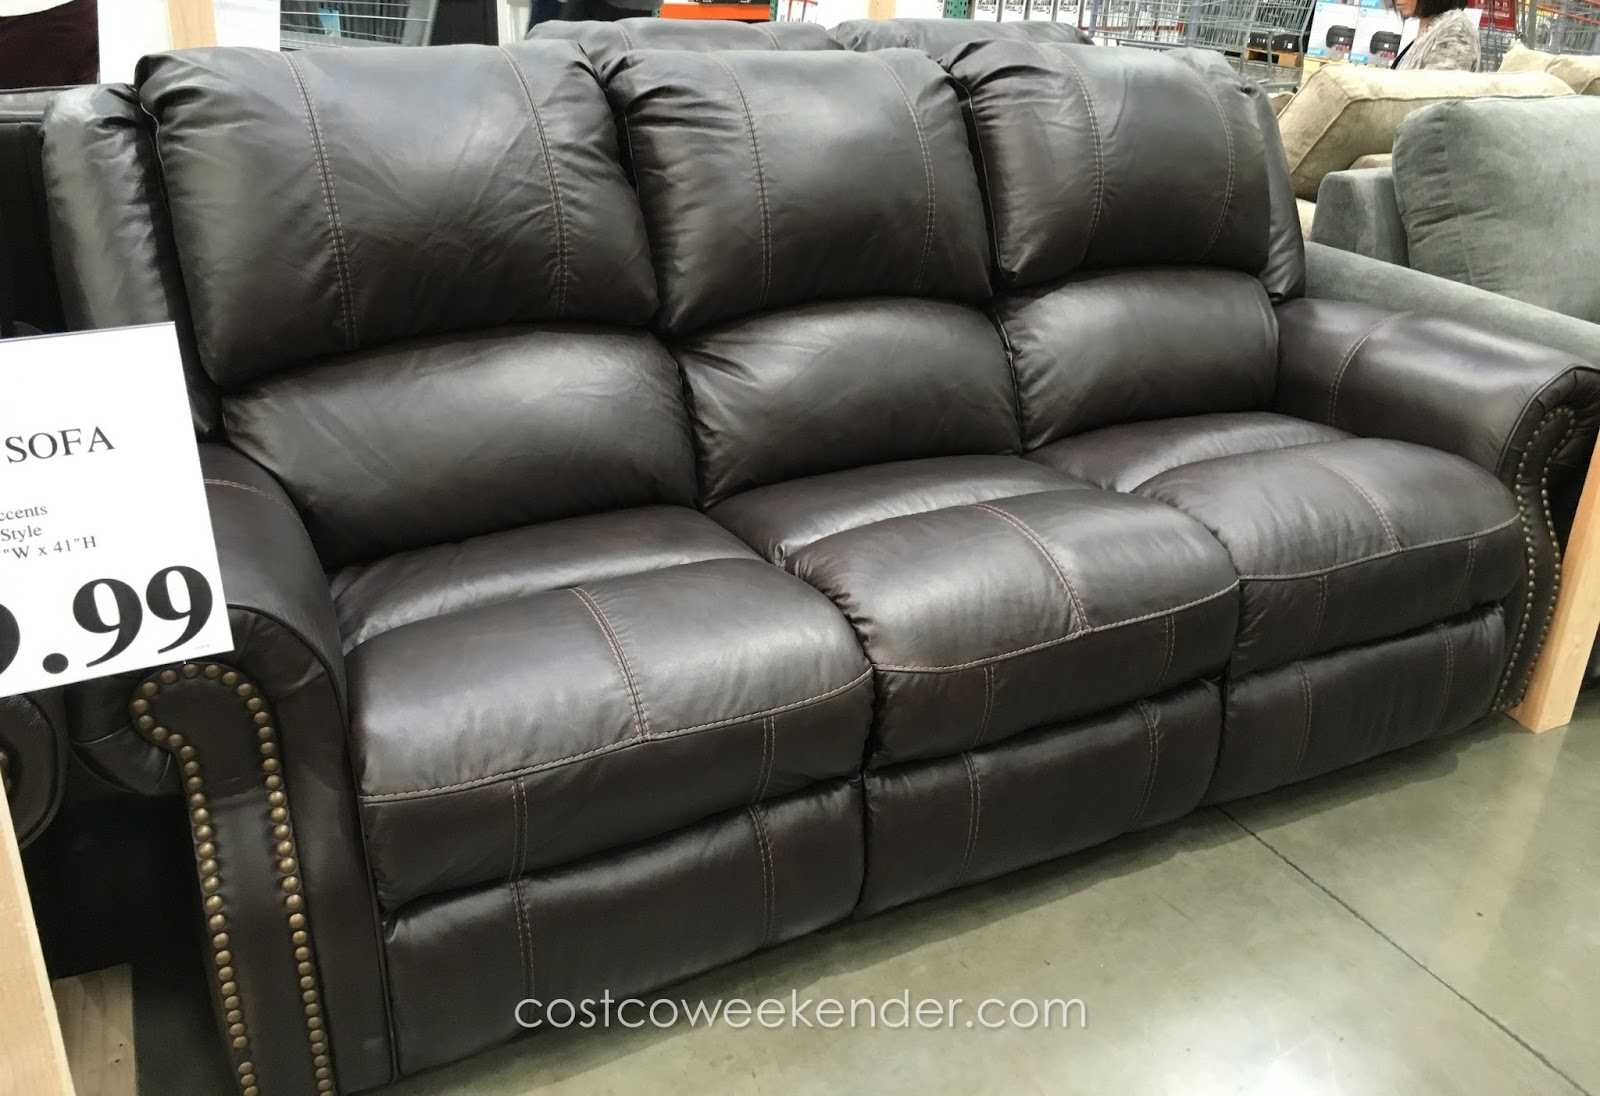 Berkline leather reclining sofa costco weekender Reclining leather sofa and loveseat